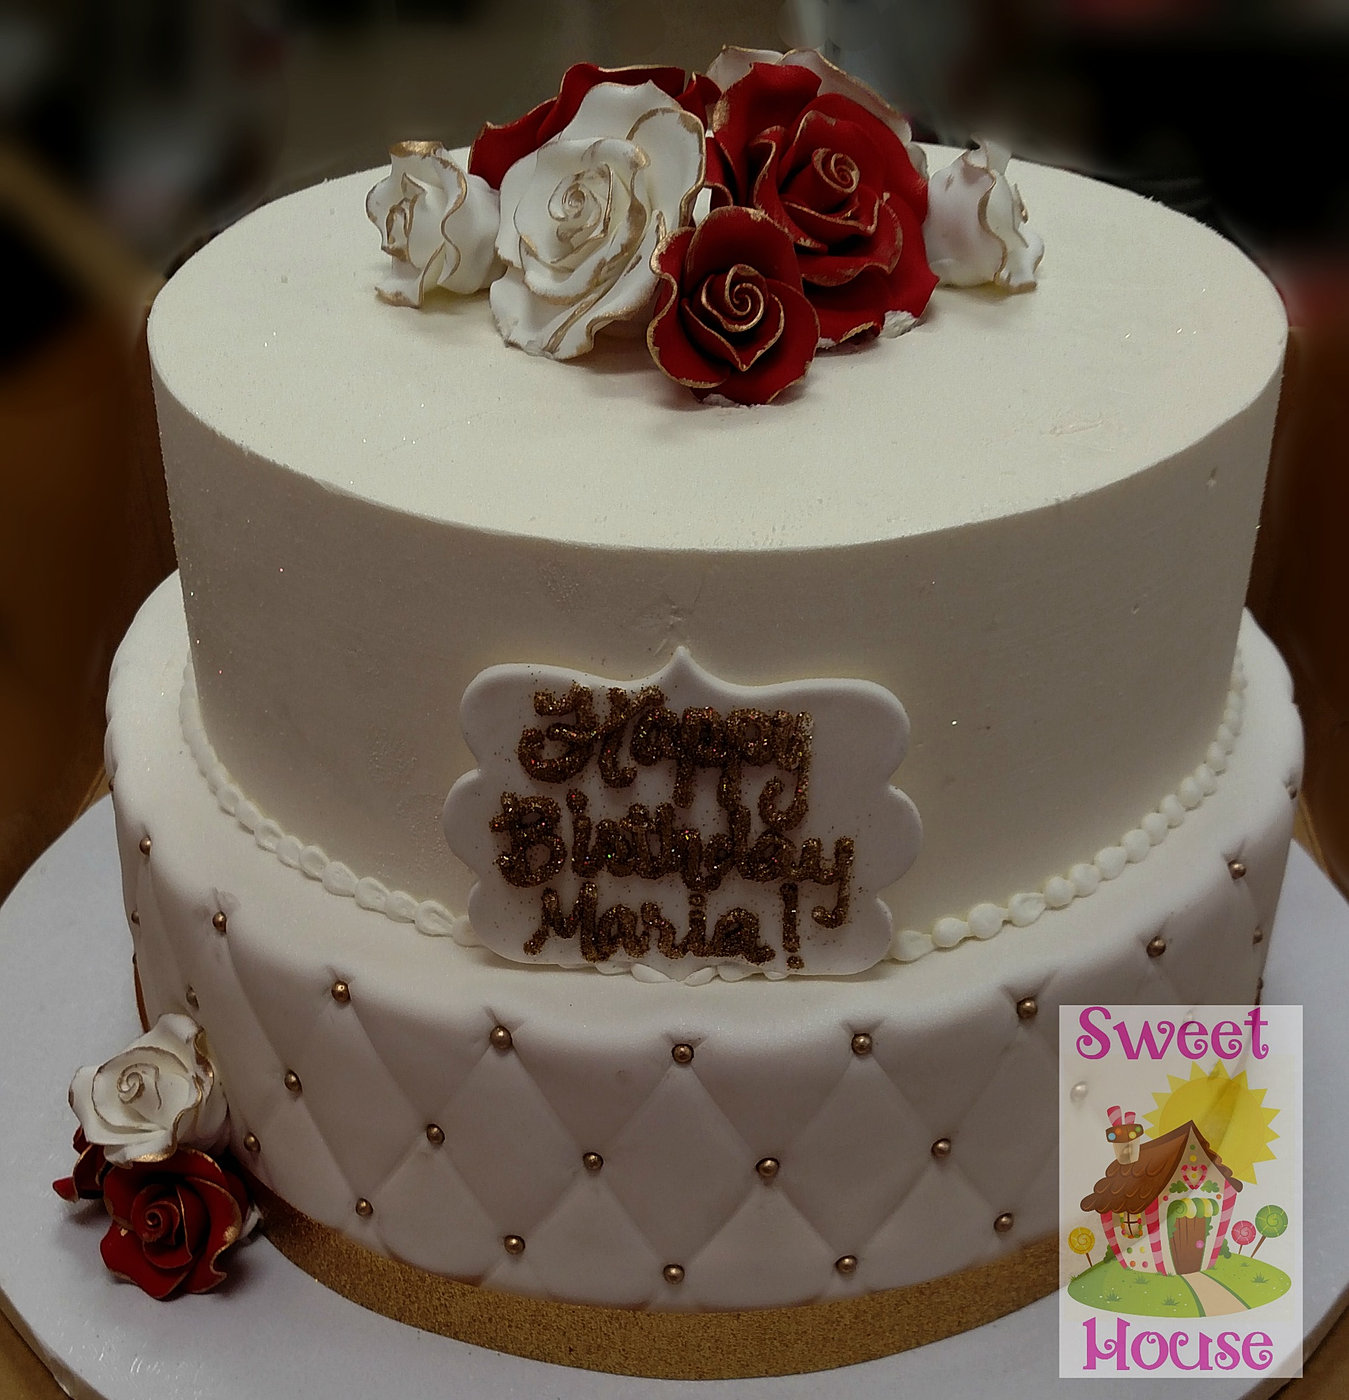 Elegant Cake Designs Birthday Cakes : Sweet House Cake Supply & Bakery Birthday Cakes